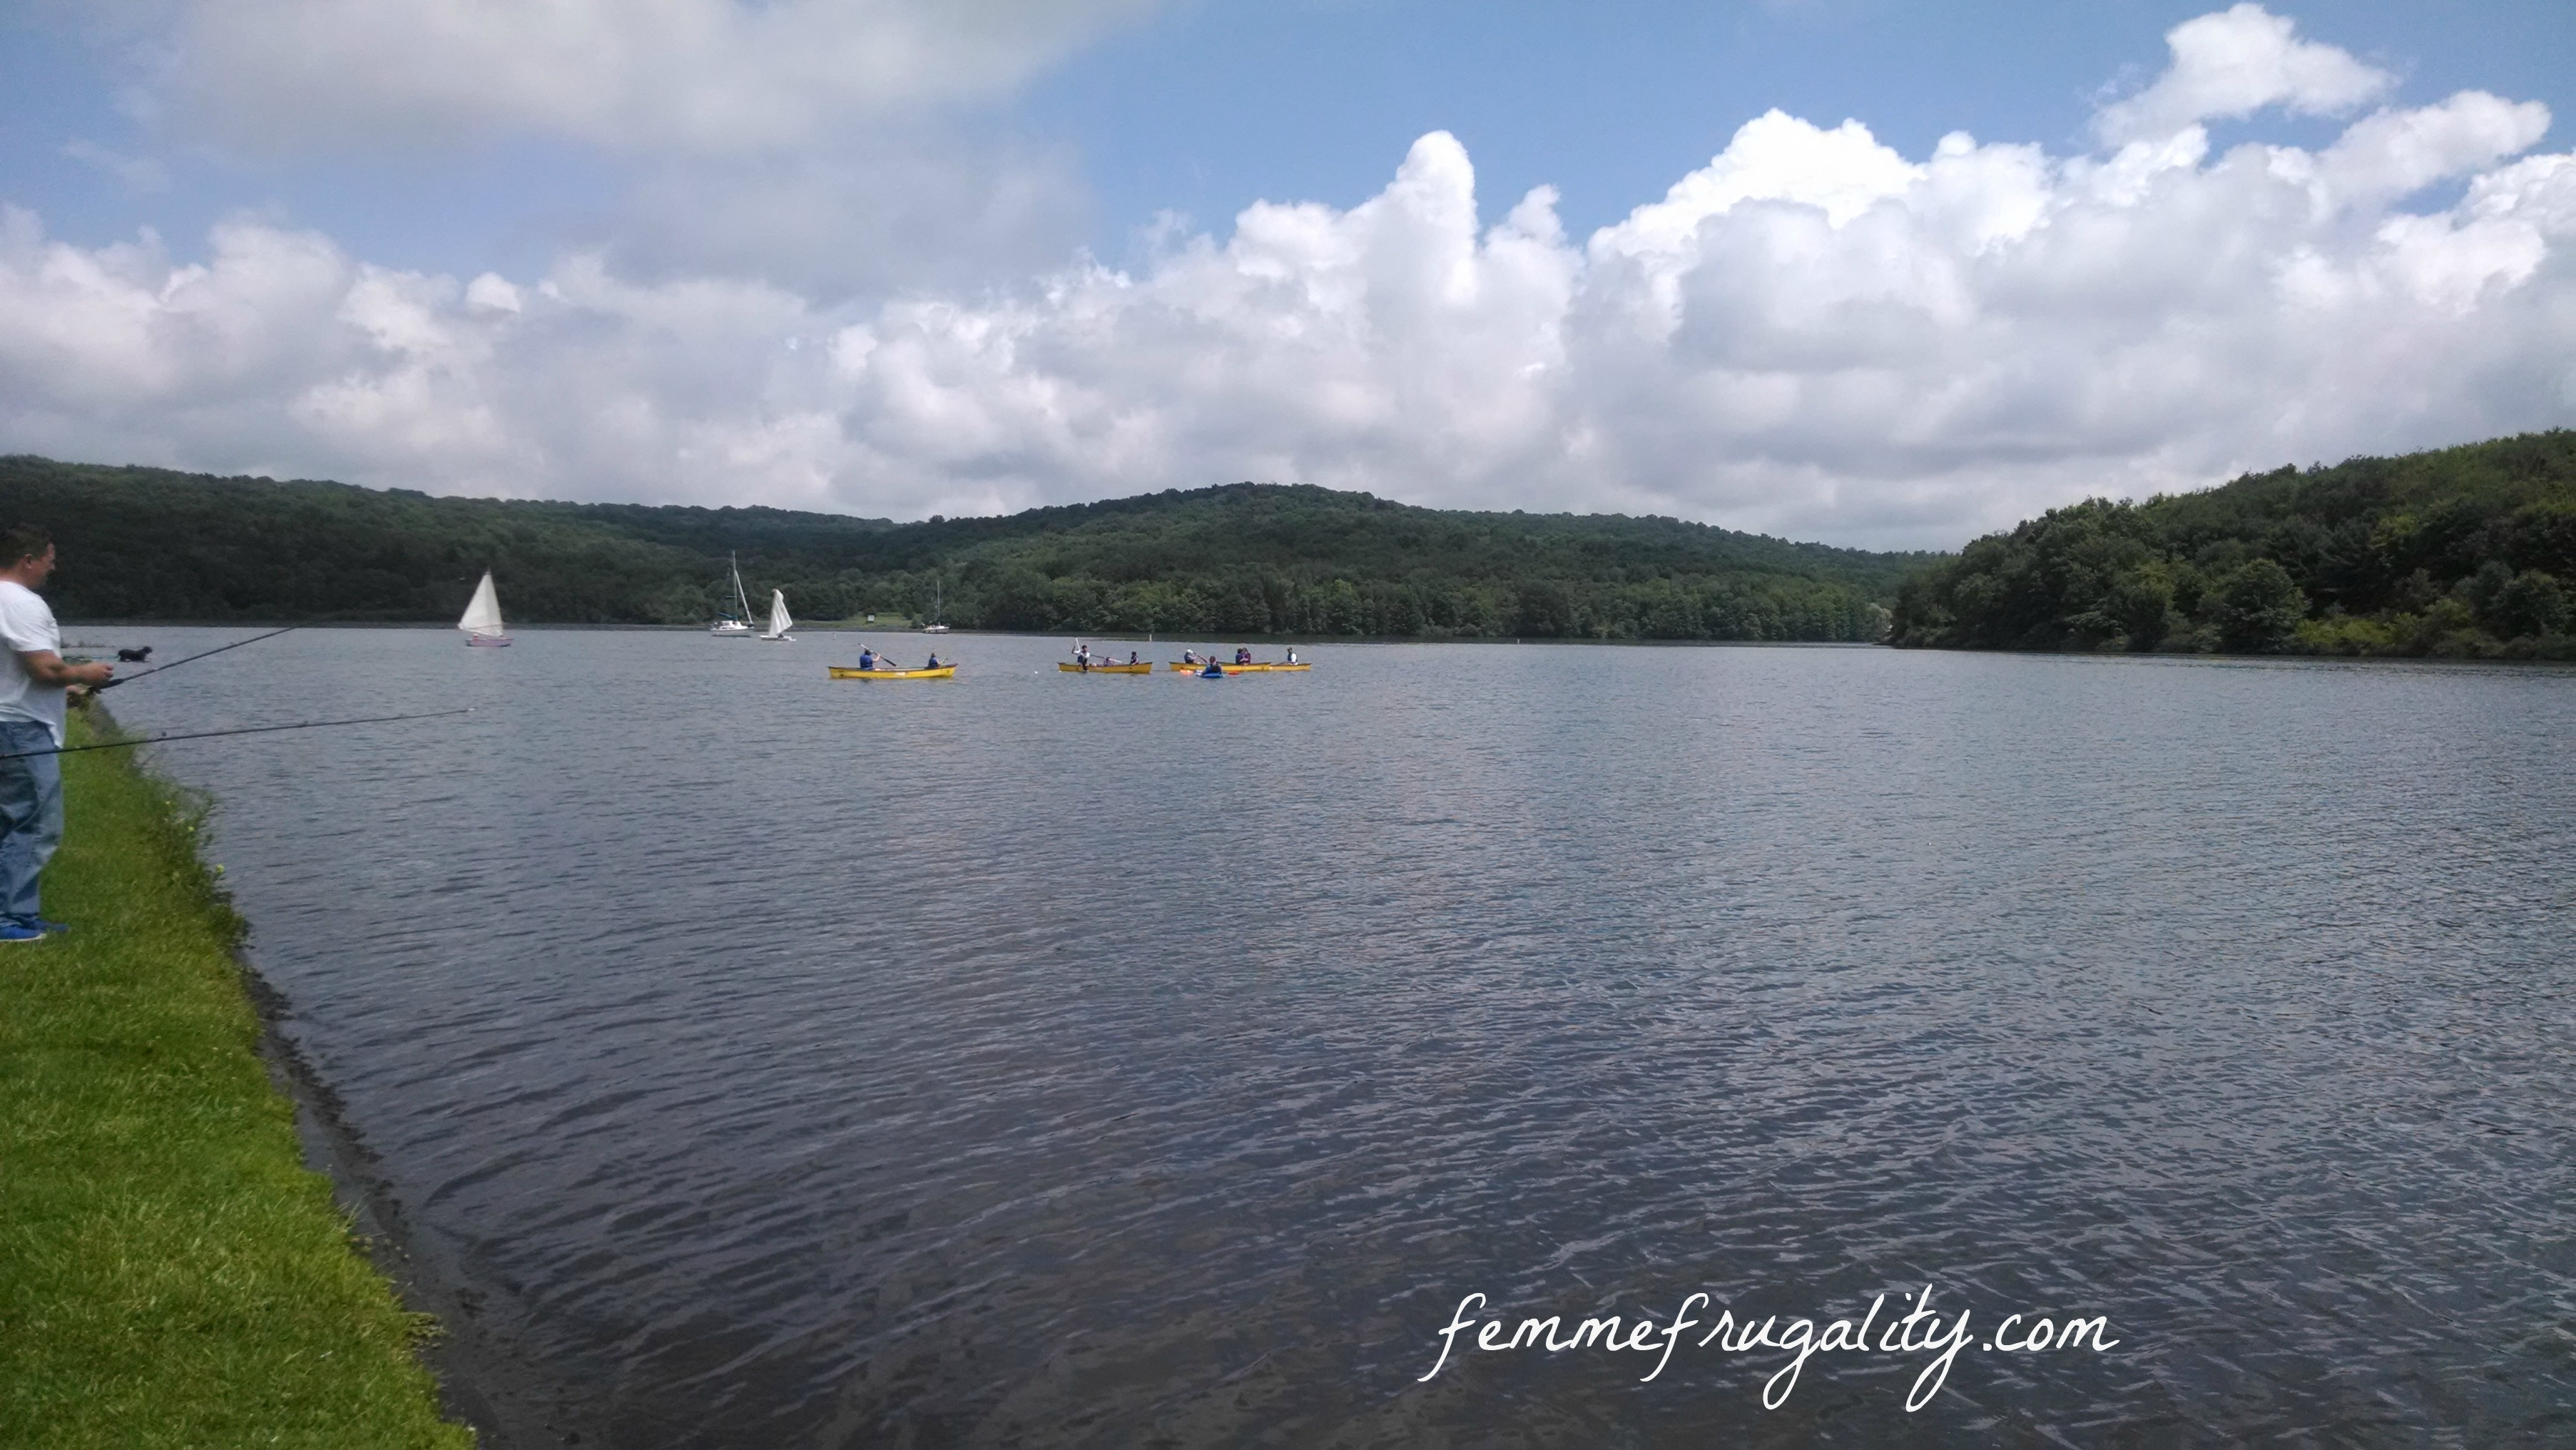 lake arthur Vacation rental homes located at lake arthur enjoy the scenic beauty of treasure lake when you stay at the harbor view haven.